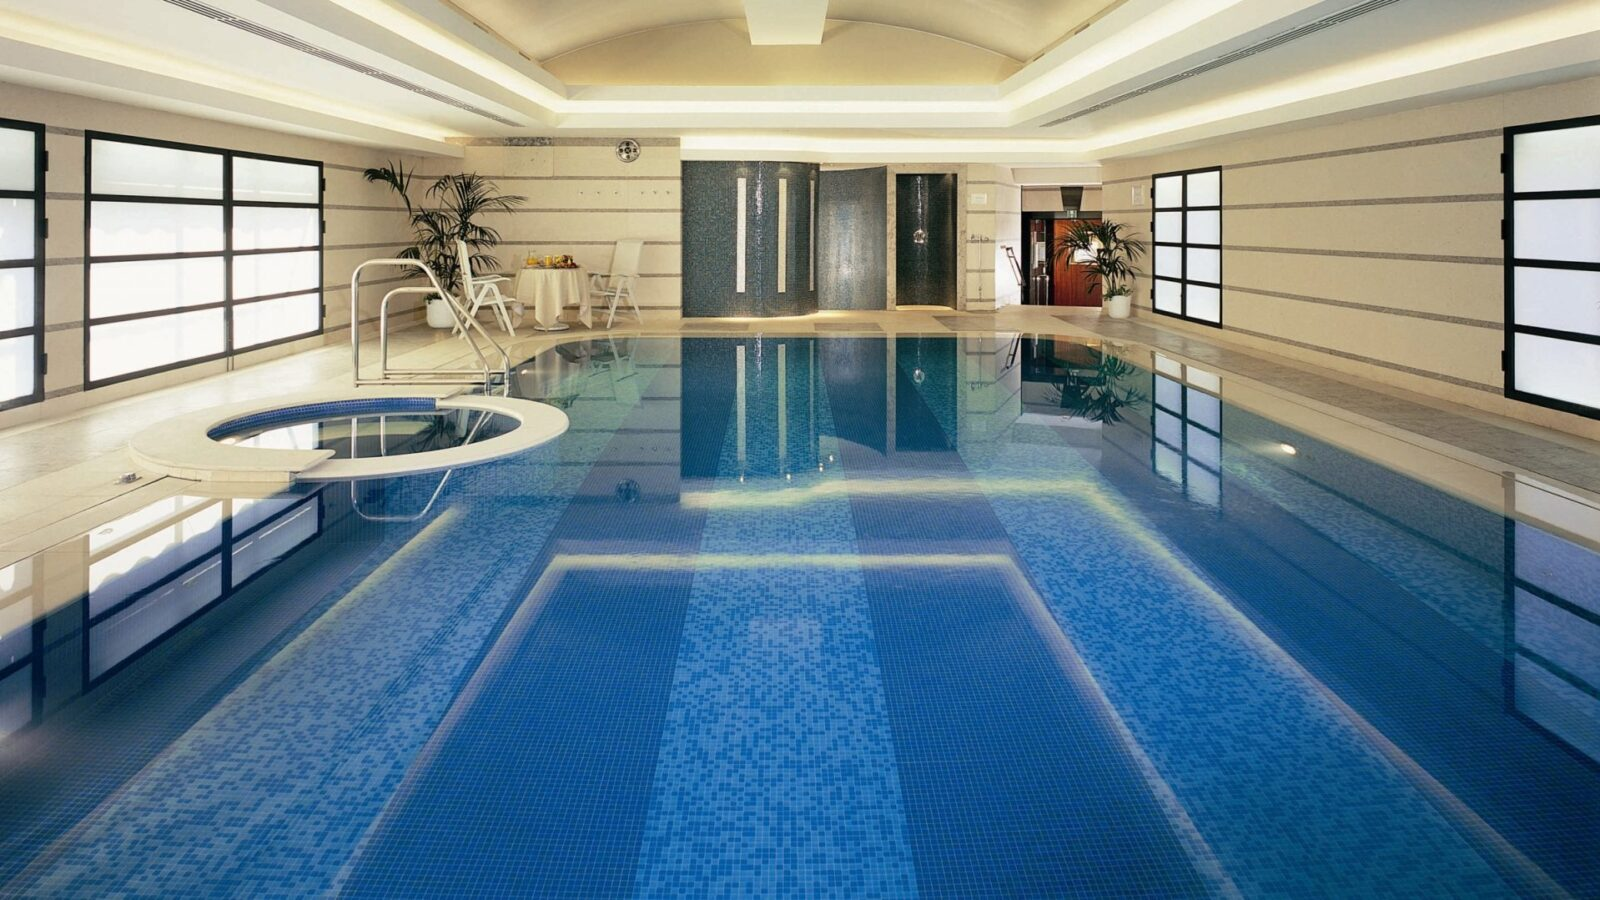 Hotel Principe di Savoia Club 10, swimming pool